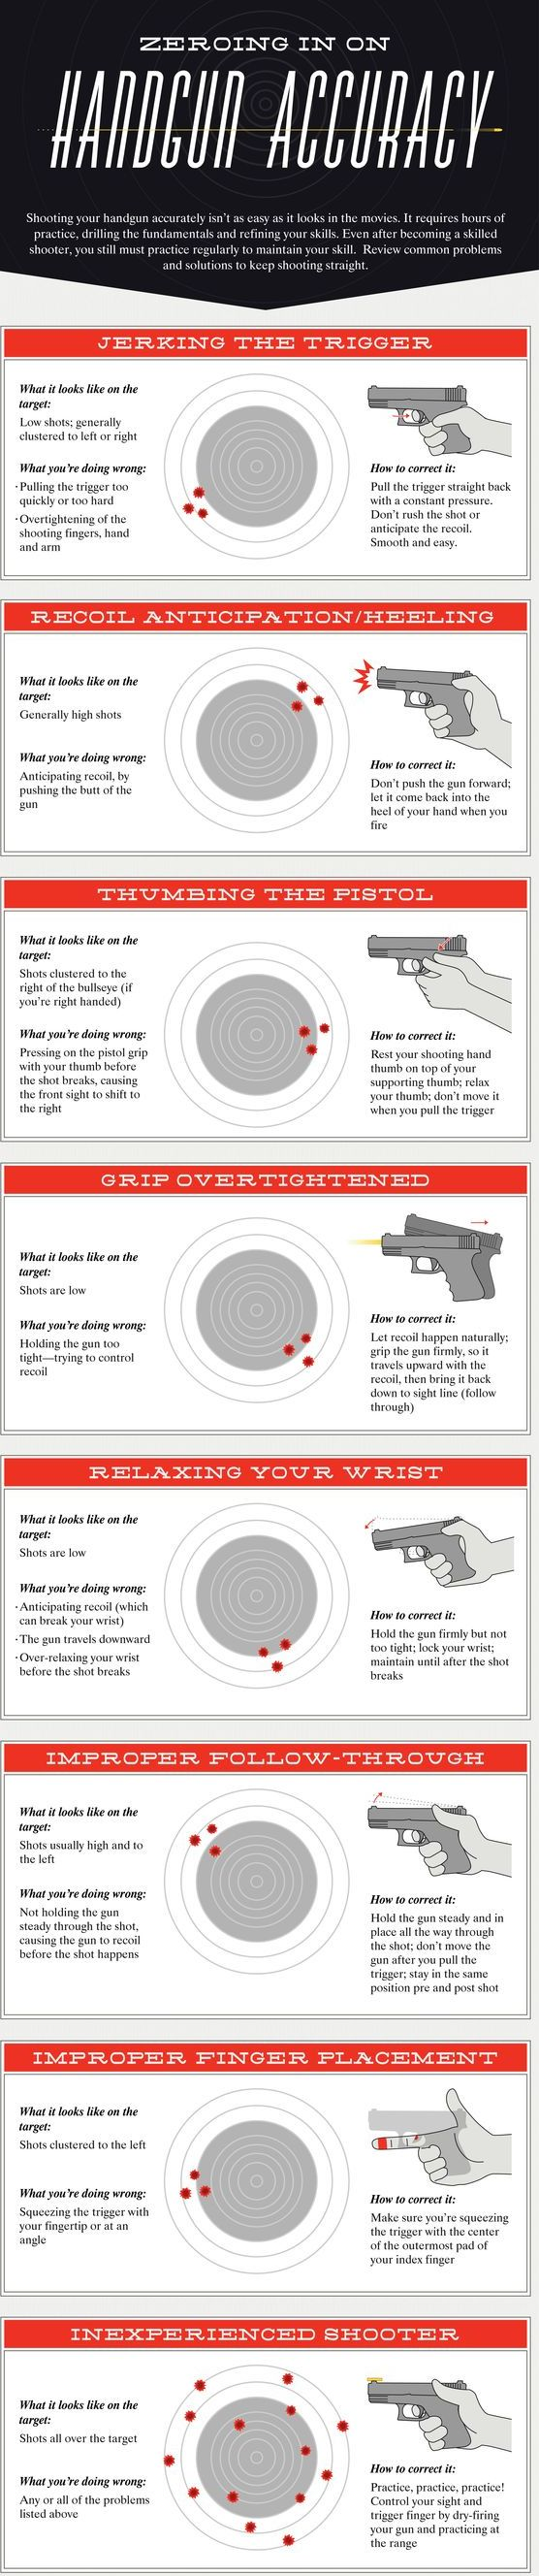 Go Over This Infographic To Learn How To Raise Your Handgun Shot Accuracy These Helpful Tips Will Teach You Ho Handgun Shooting Hand Guns Pistol Shooting Tips